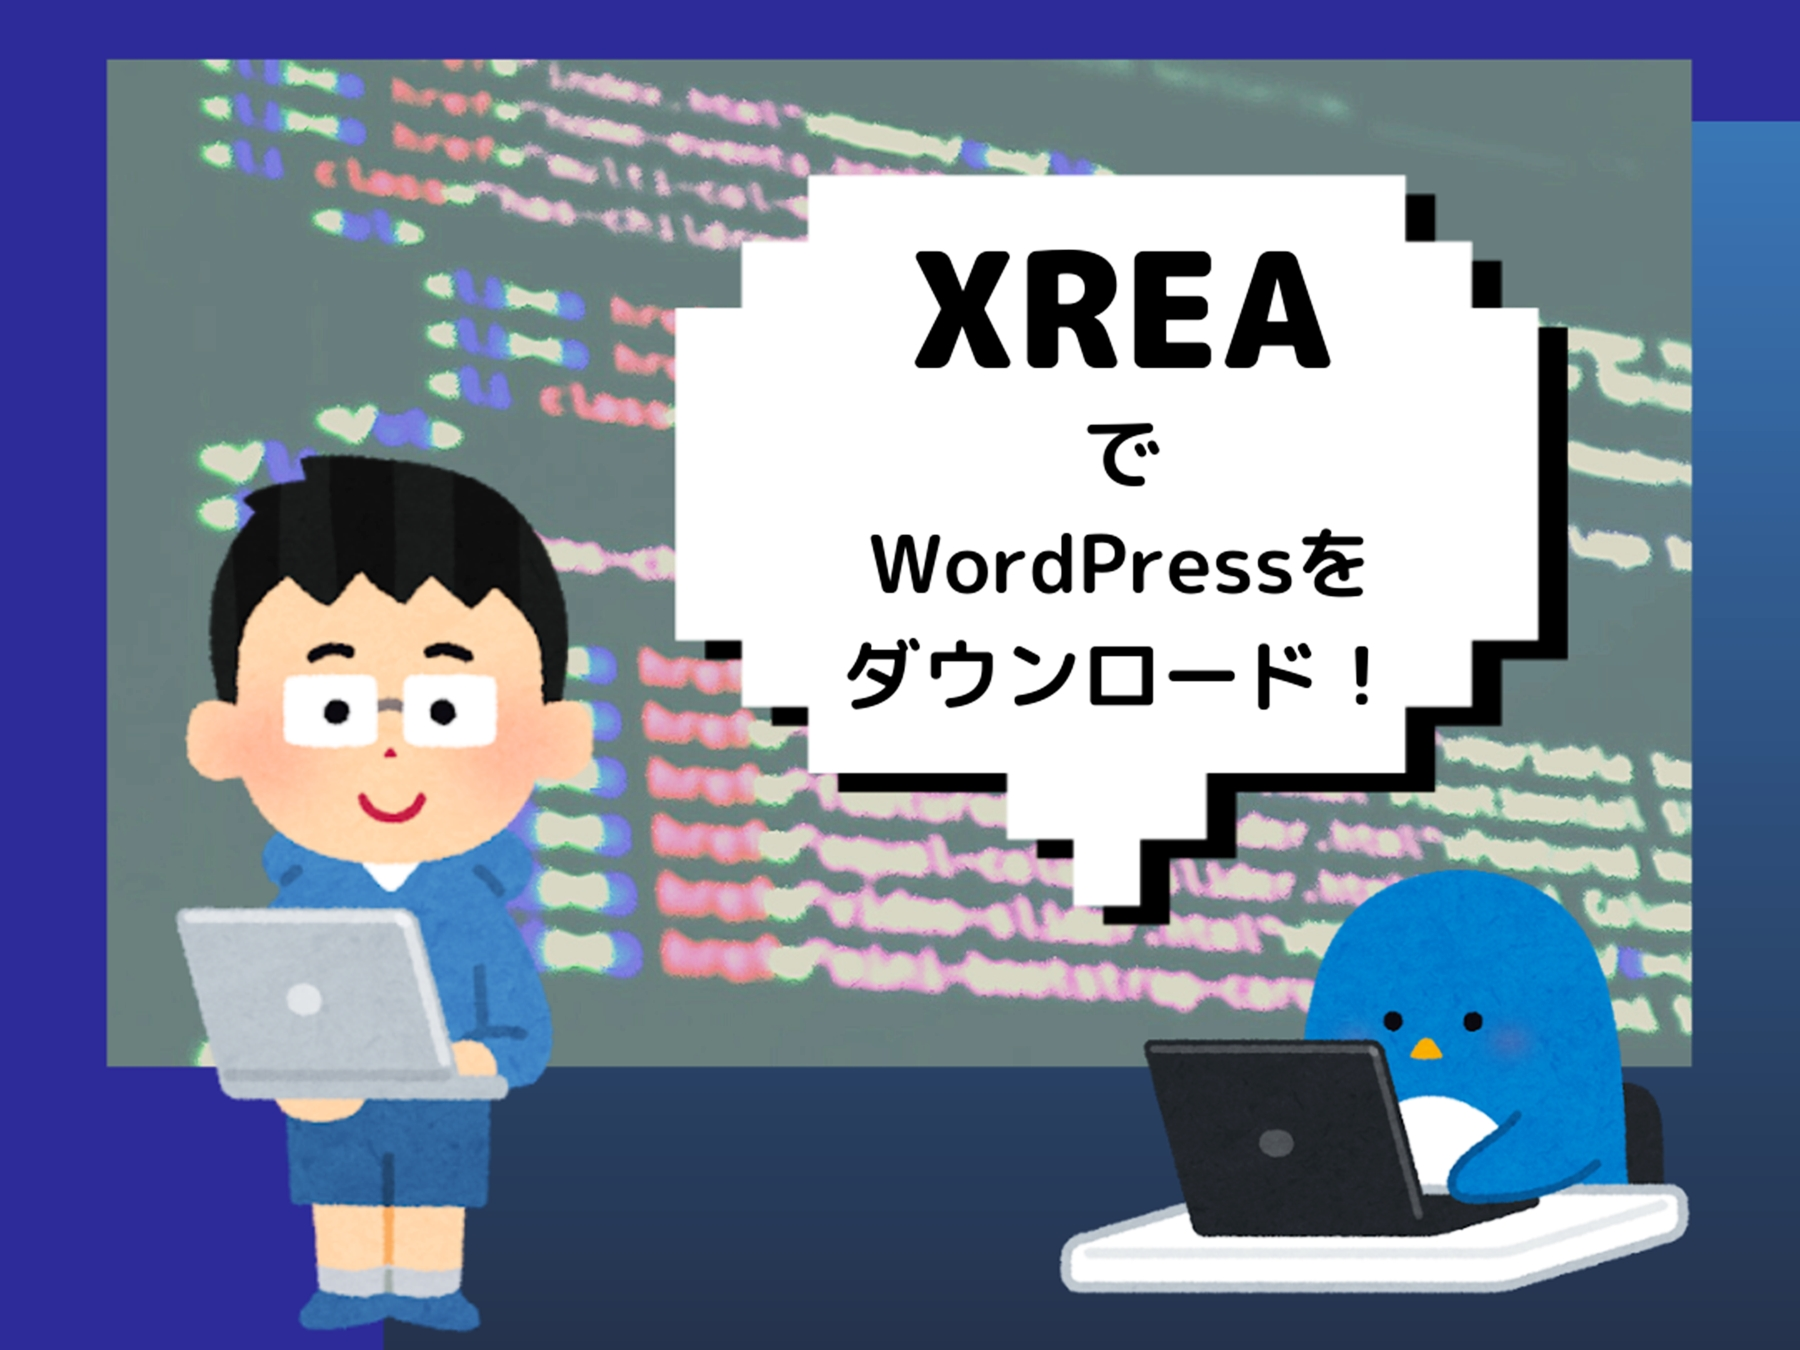 XREAでWordpressはじめるよ!